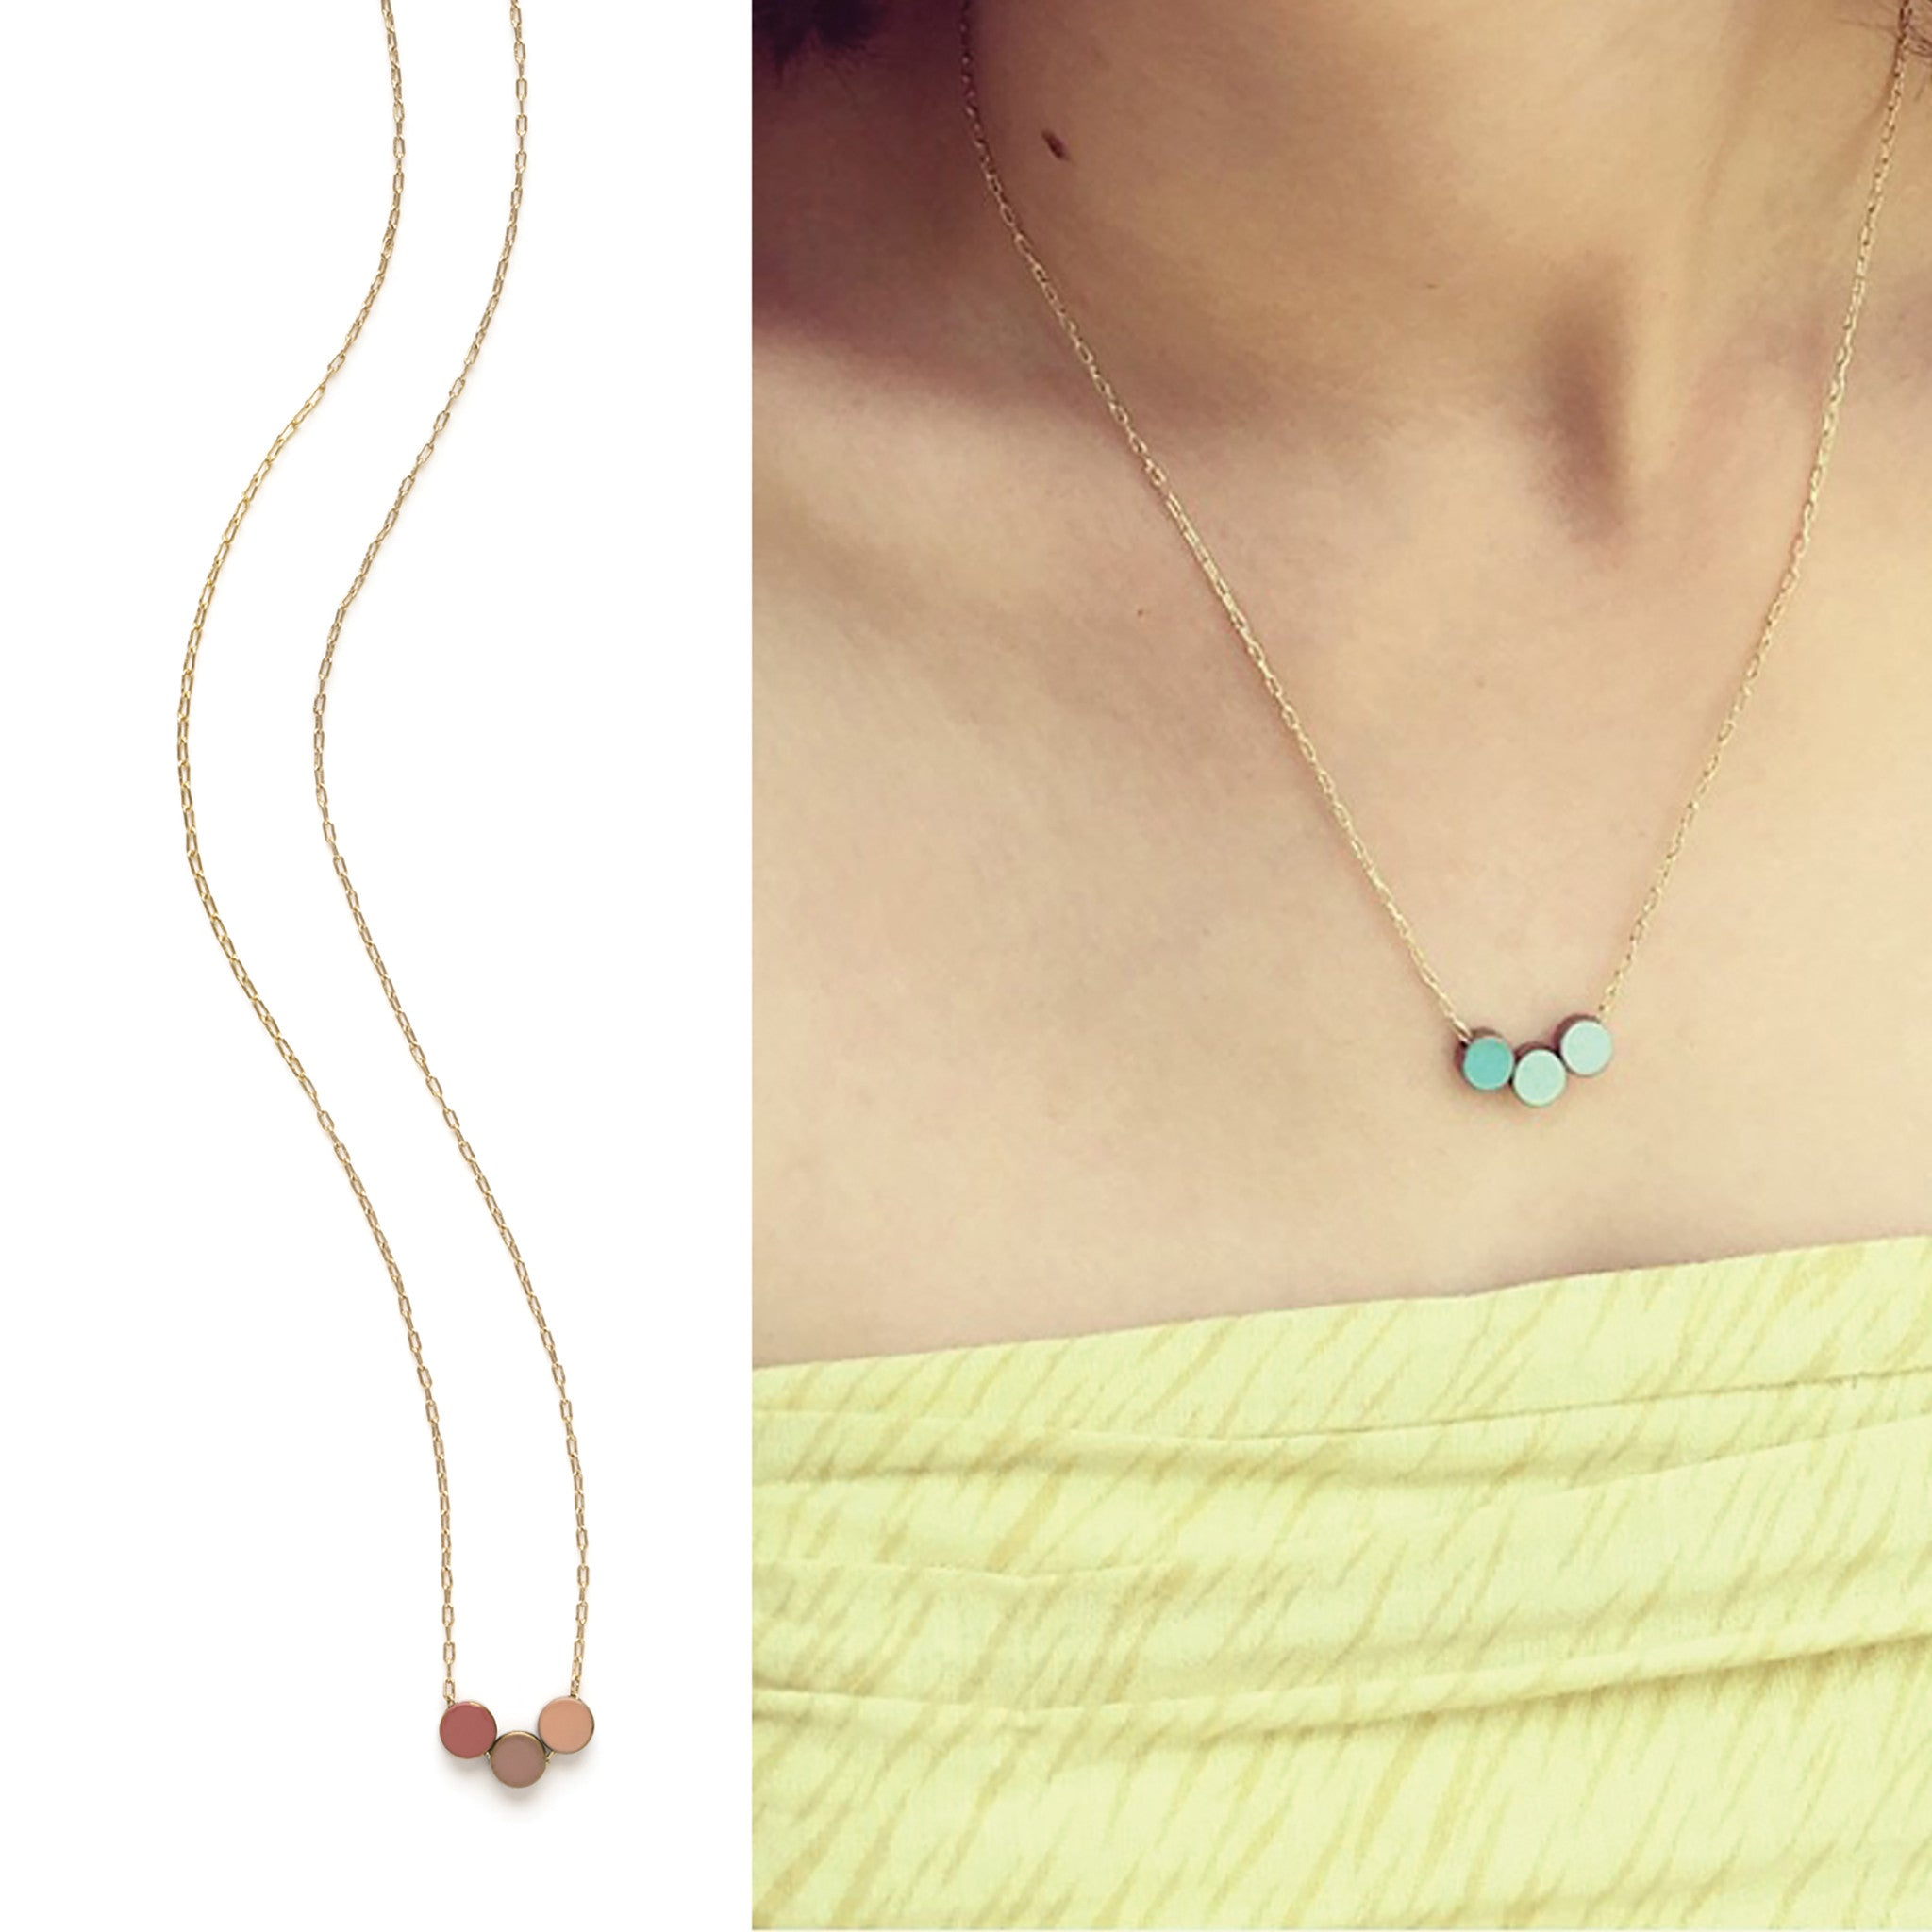 slice twisted ottoman turquoise rope necklace necklaces precious stone semi silk hands and pink gold